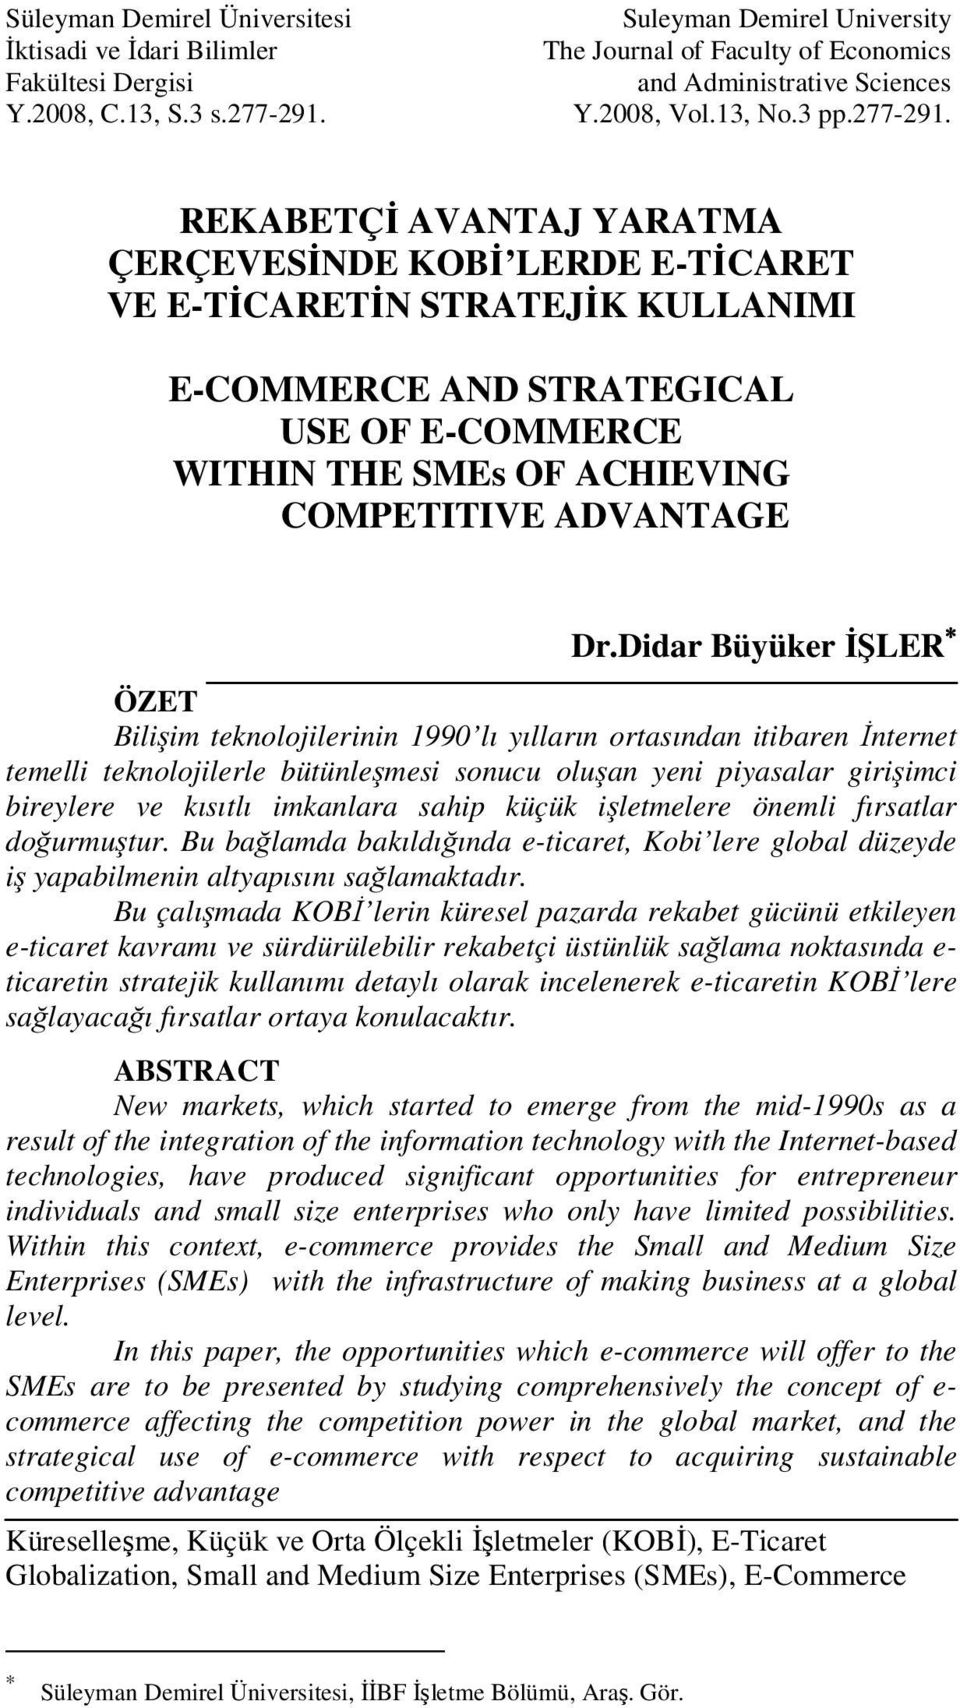 REKABETÇİ AVANTAJ YARATMA ÇERÇEVESİNDE KOBİ LERDE E-TİCARET VE E-TİCARETİN STRATEJİK KULLANIMI E-COMMERCE AND STRATEGICAL USE OF E-COMMERCE WITHIN THE SMEs OF ACHIEVING COMPETITIVE ADVANTAGE Dr.